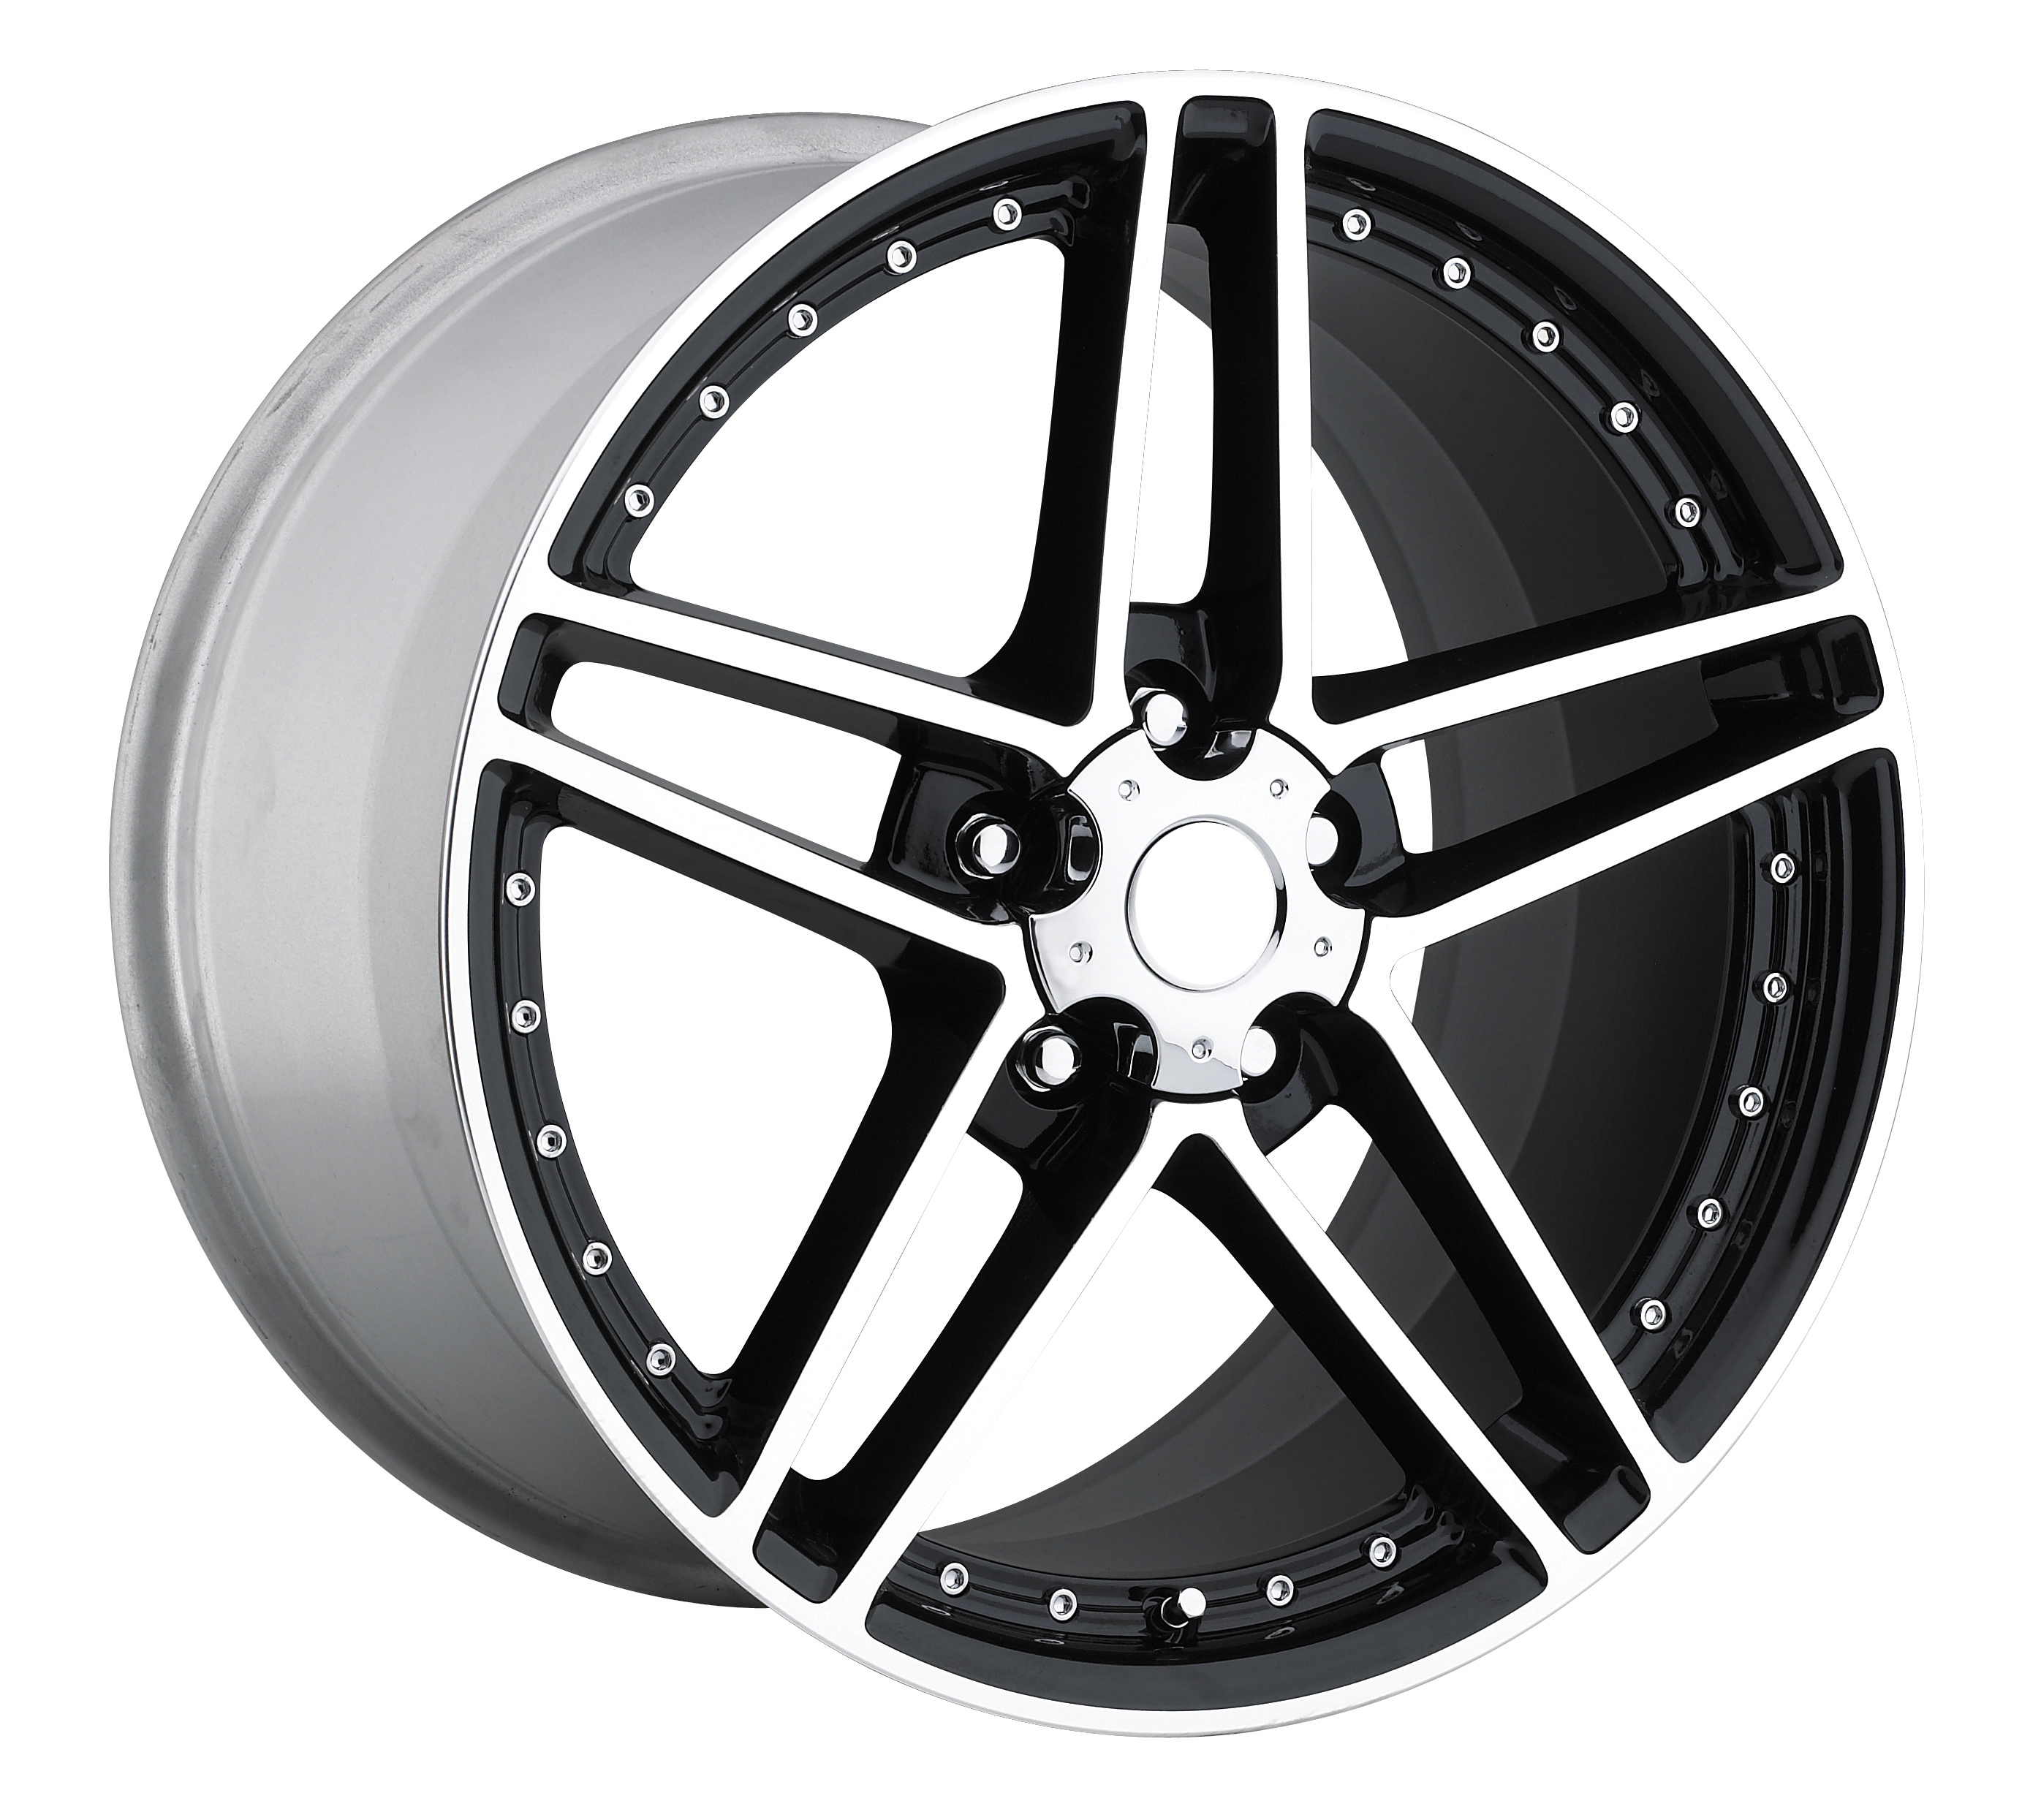 Chevrolet Corvette 1997-2012 19x11 5x4.75 +65 - C6 Z06 Motorsport Wheel -  Black Machine Face With Cap